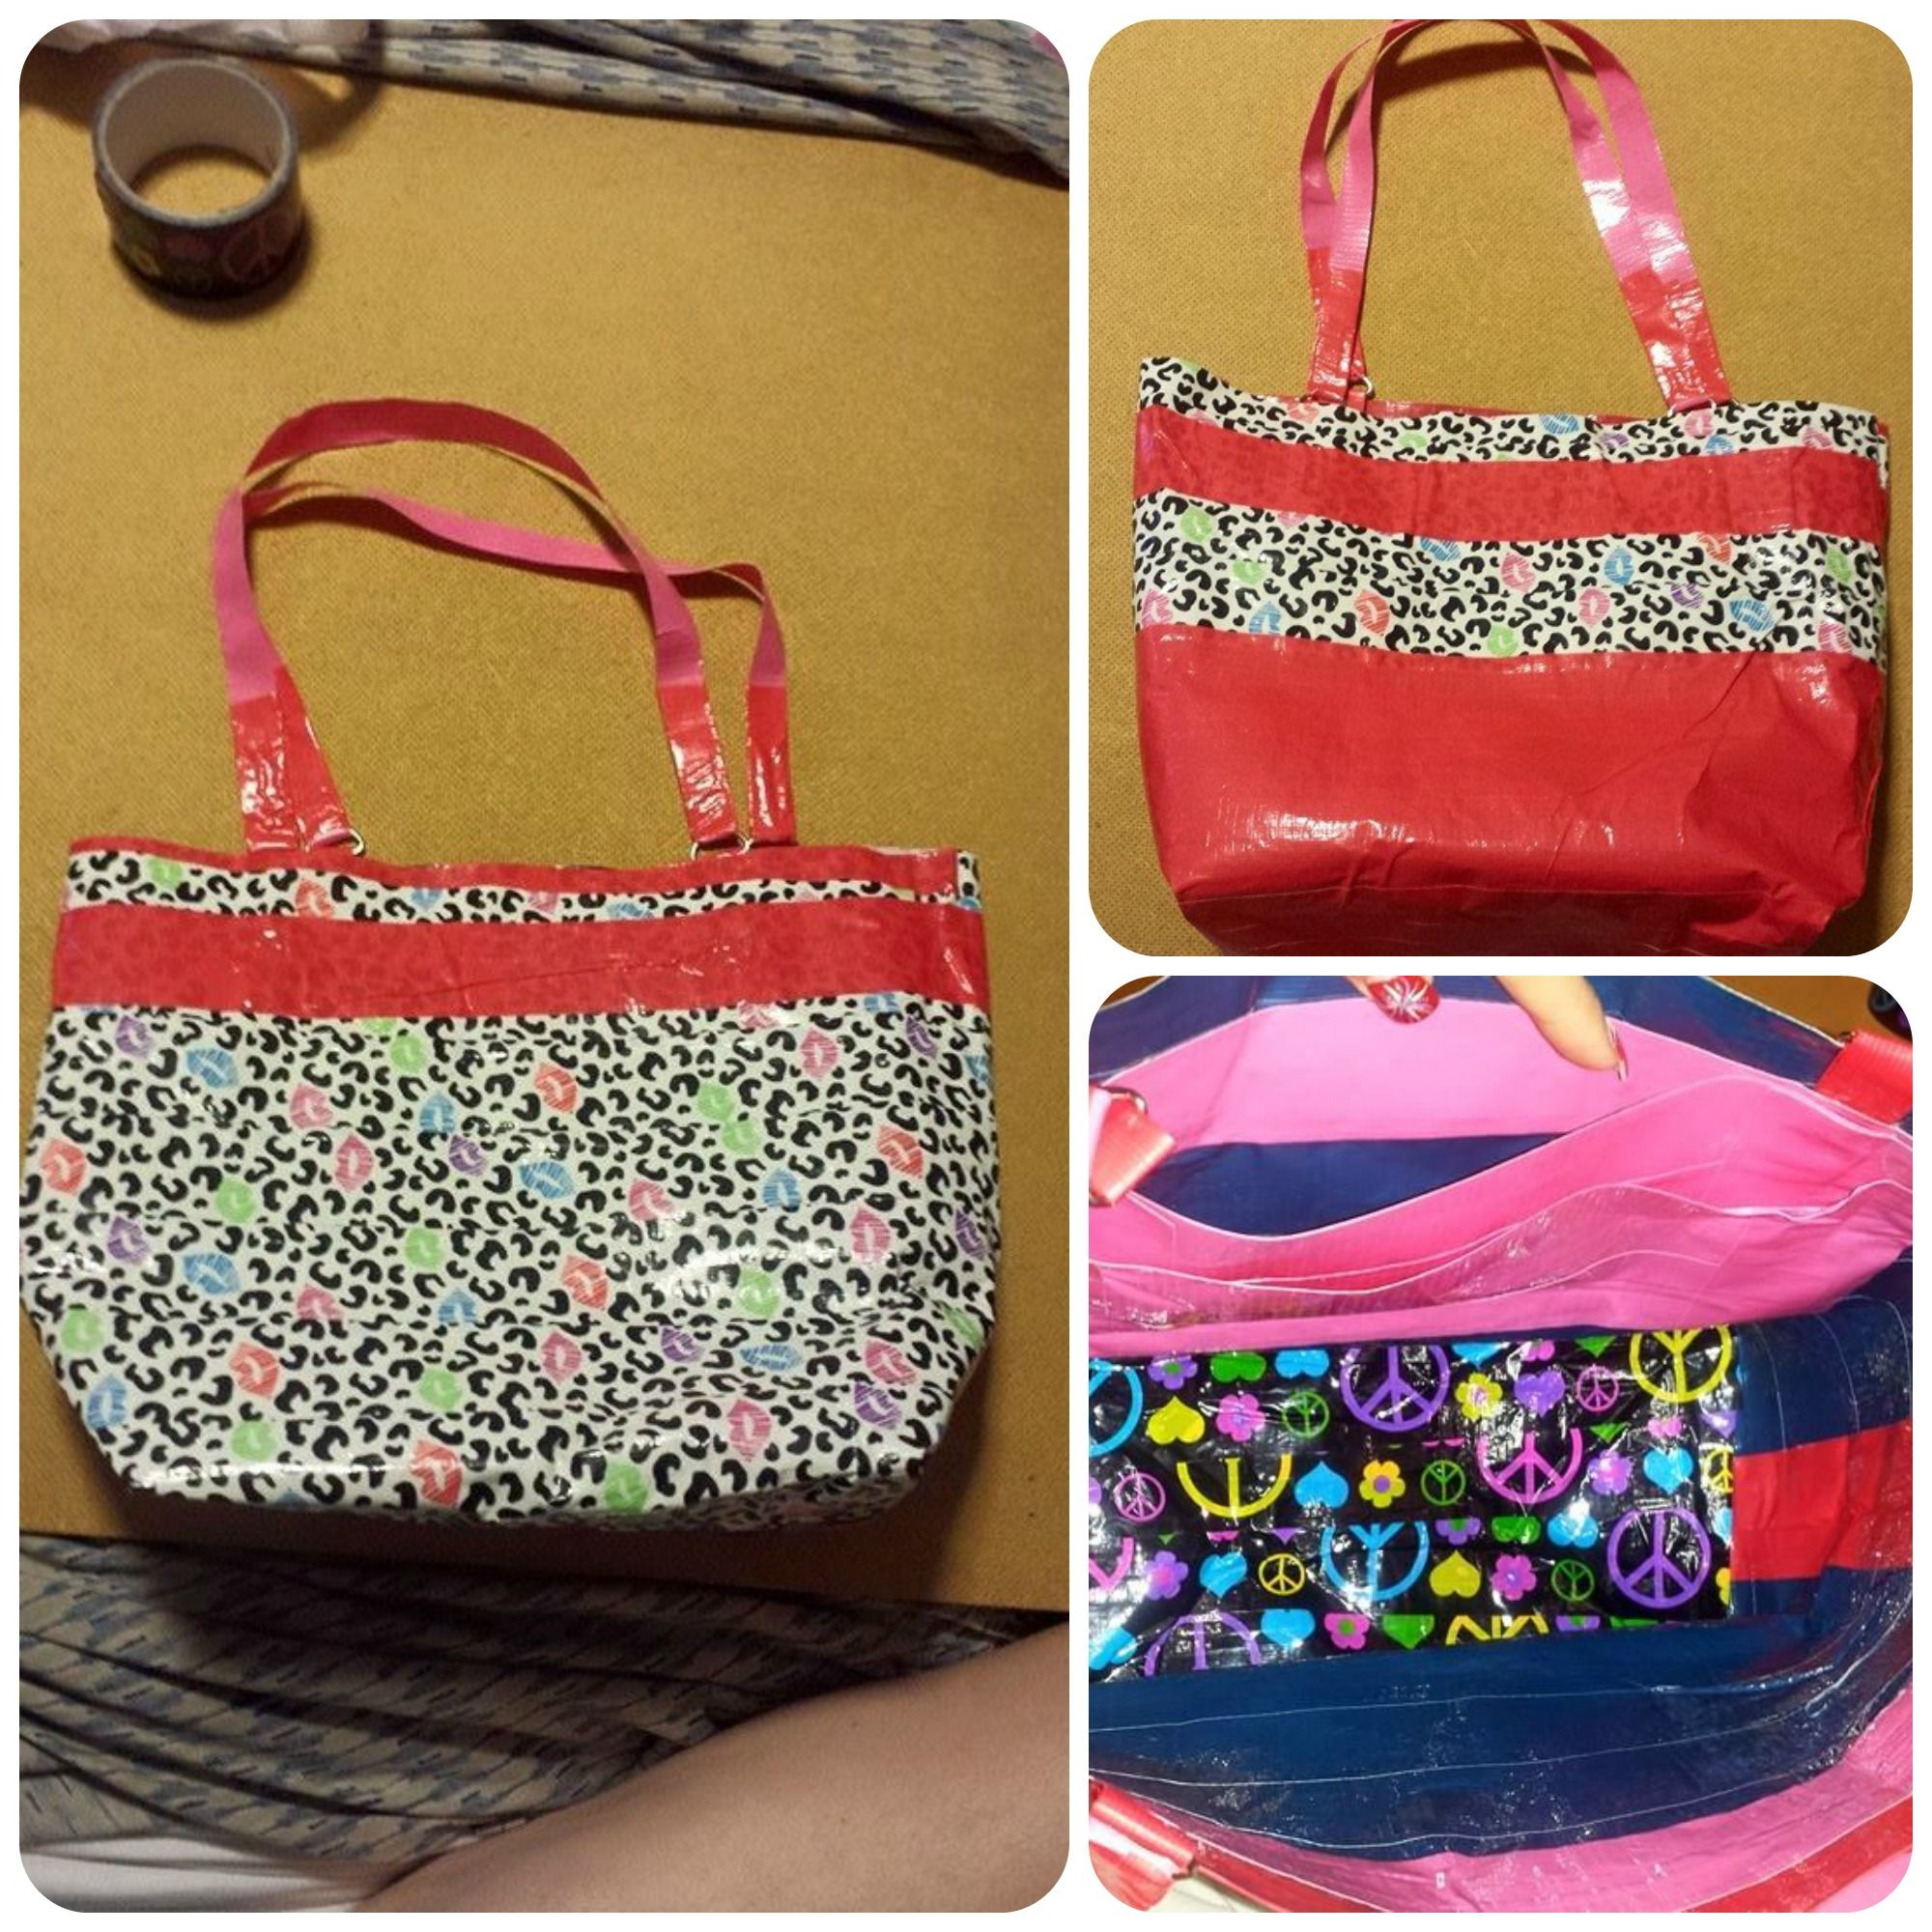 My Duct Tape Purse I Made With Duct Tape From